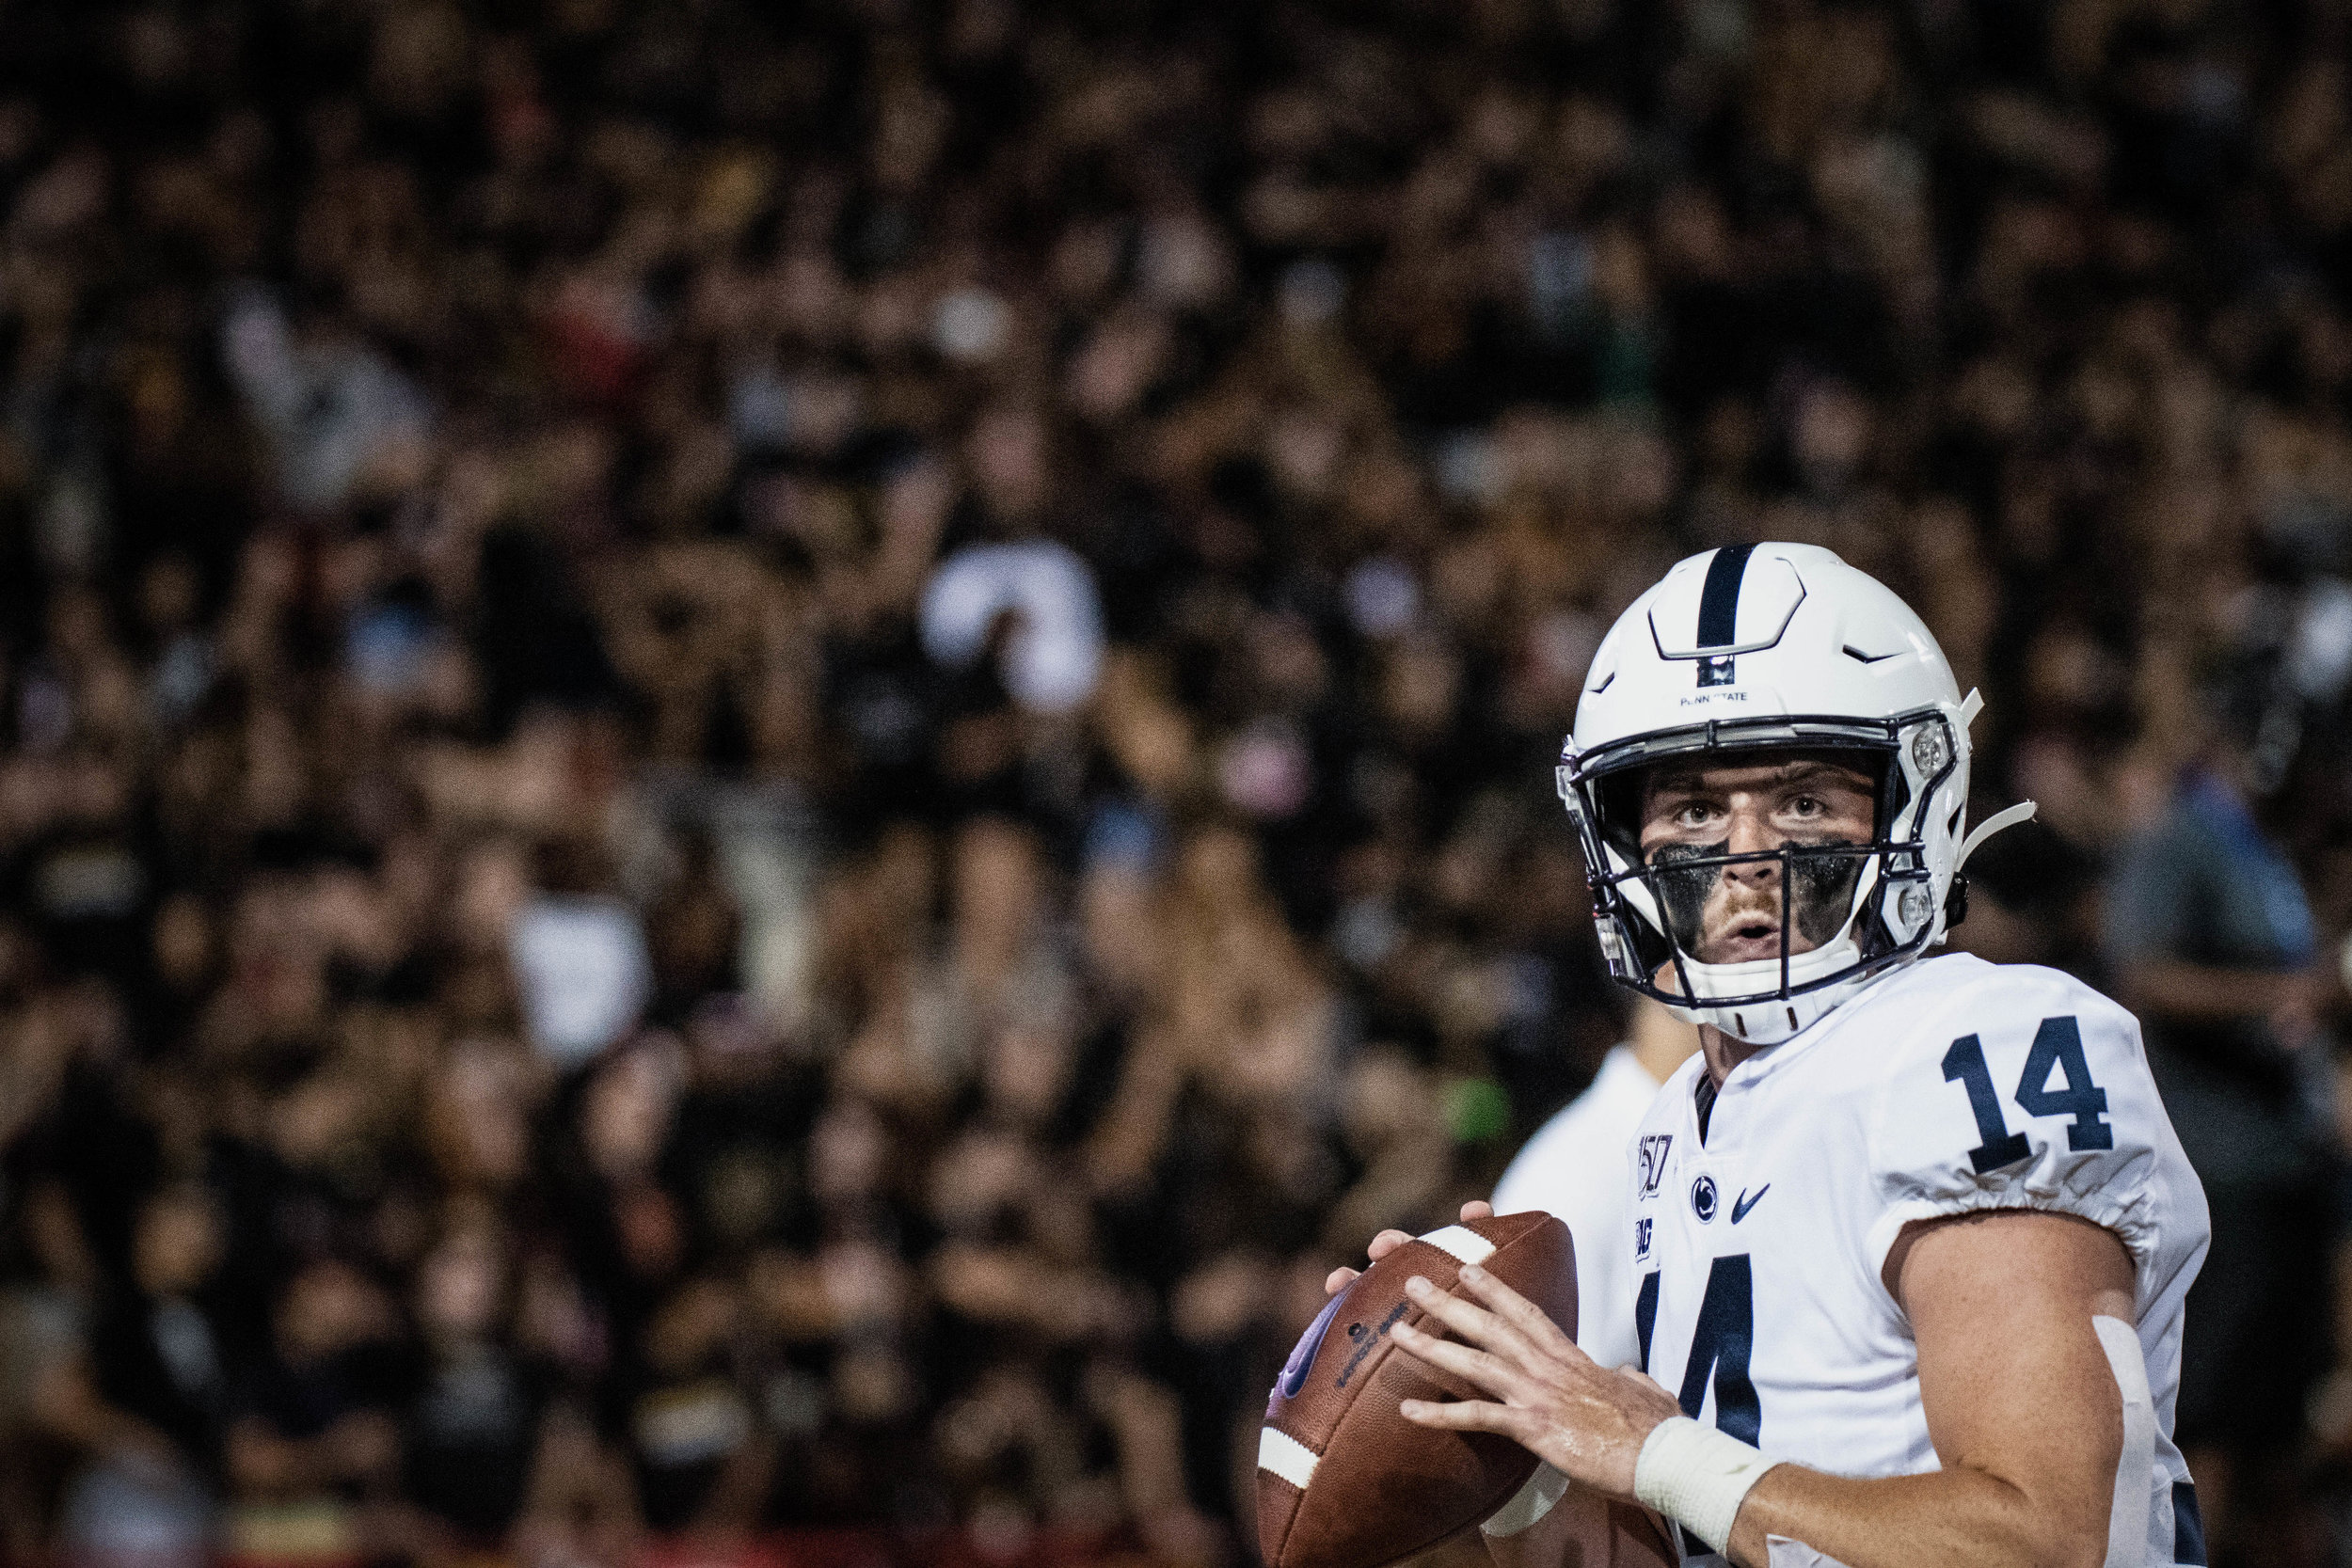 Penn State Nittany Lions quarterback Sean Clifford (14) warms up before the game against Maryland on Friday, Sept. 27, 2019 at Capital One Field in College Park, Md. The Nittany Lion's defeated the Terrapins 59-0. | Photo by: Noah Riffe